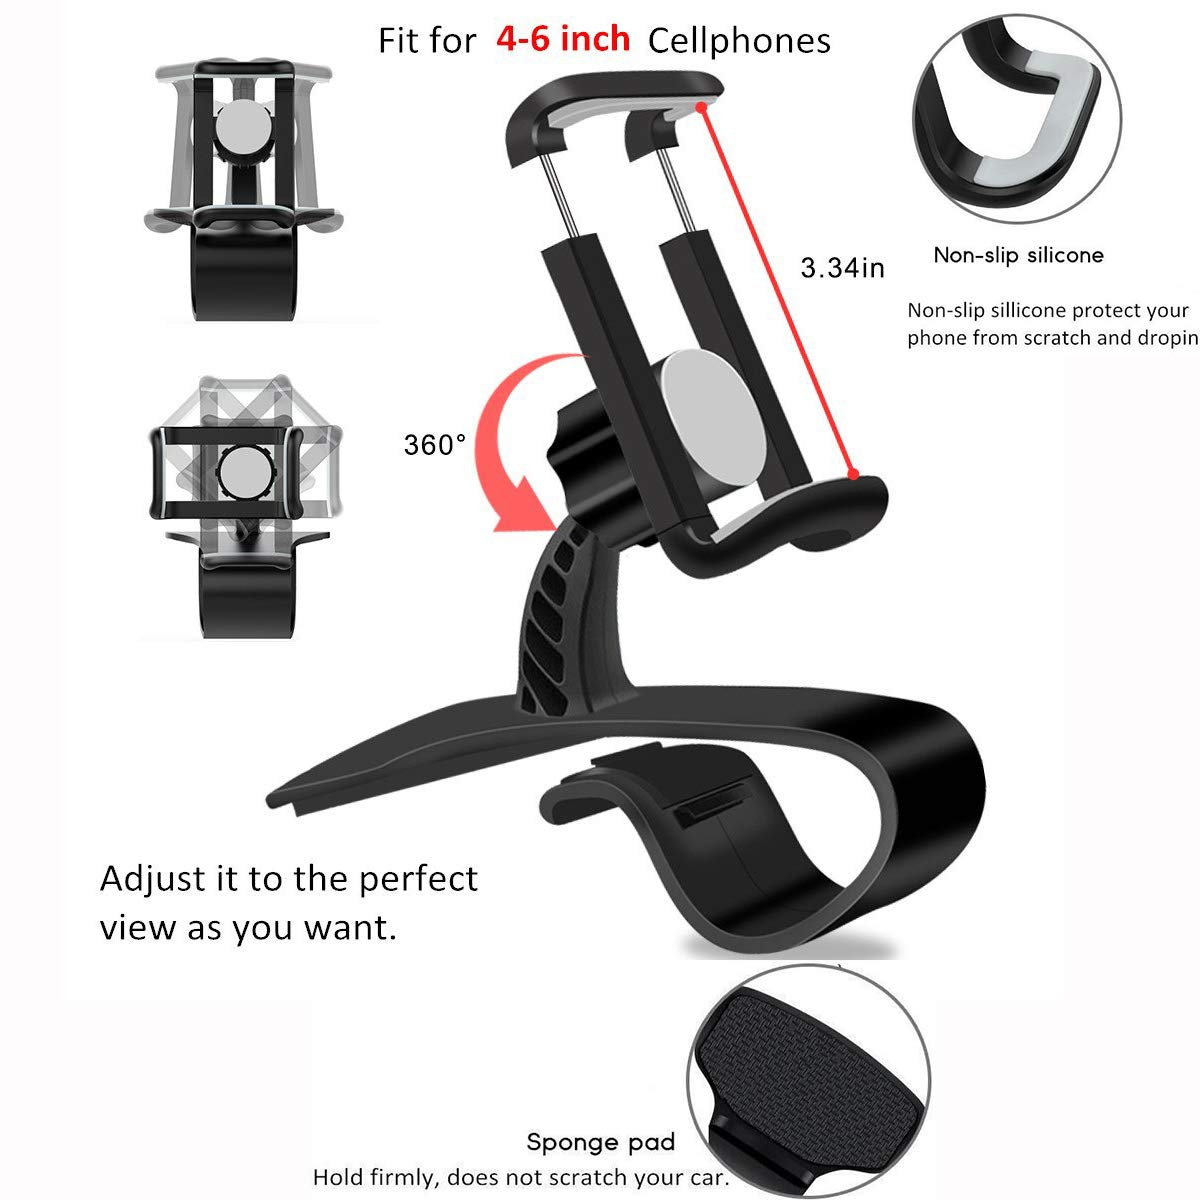 MAOBLOG Car Phone Mount 2 Pack HUD Design Clip and Magnetic Free Combination 2 in 1 Dashboard Air Vent Holder Bracket Stand Cradle for Samsung Galaxy S9 S8 S7 S7 Edge S6 and All Other Phones. Black